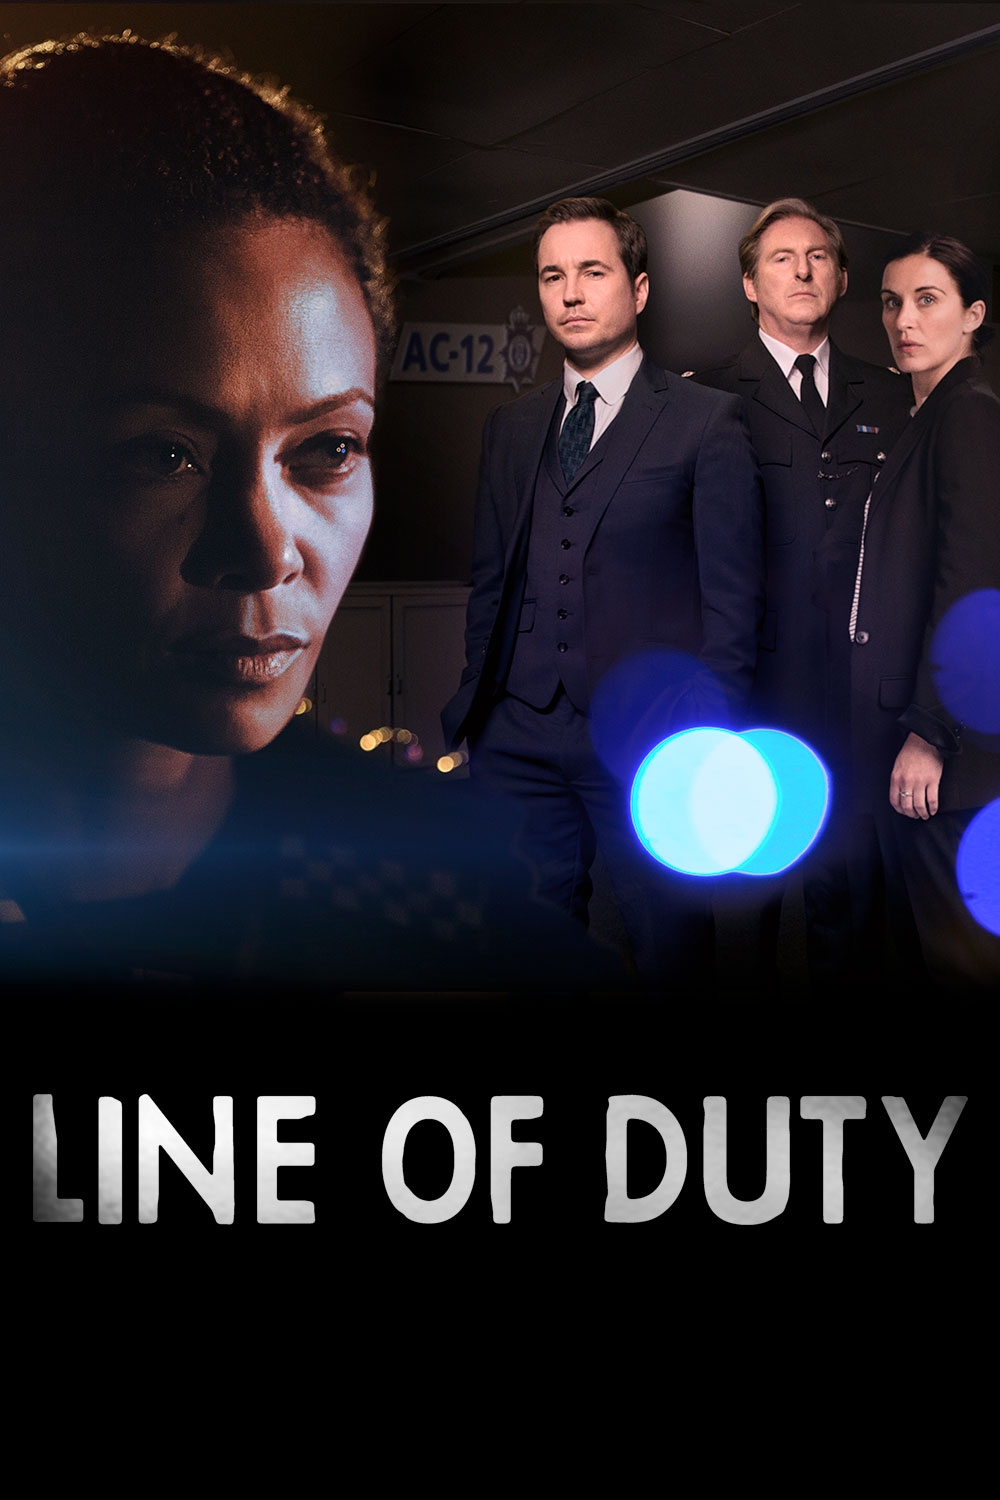 line of duty stream